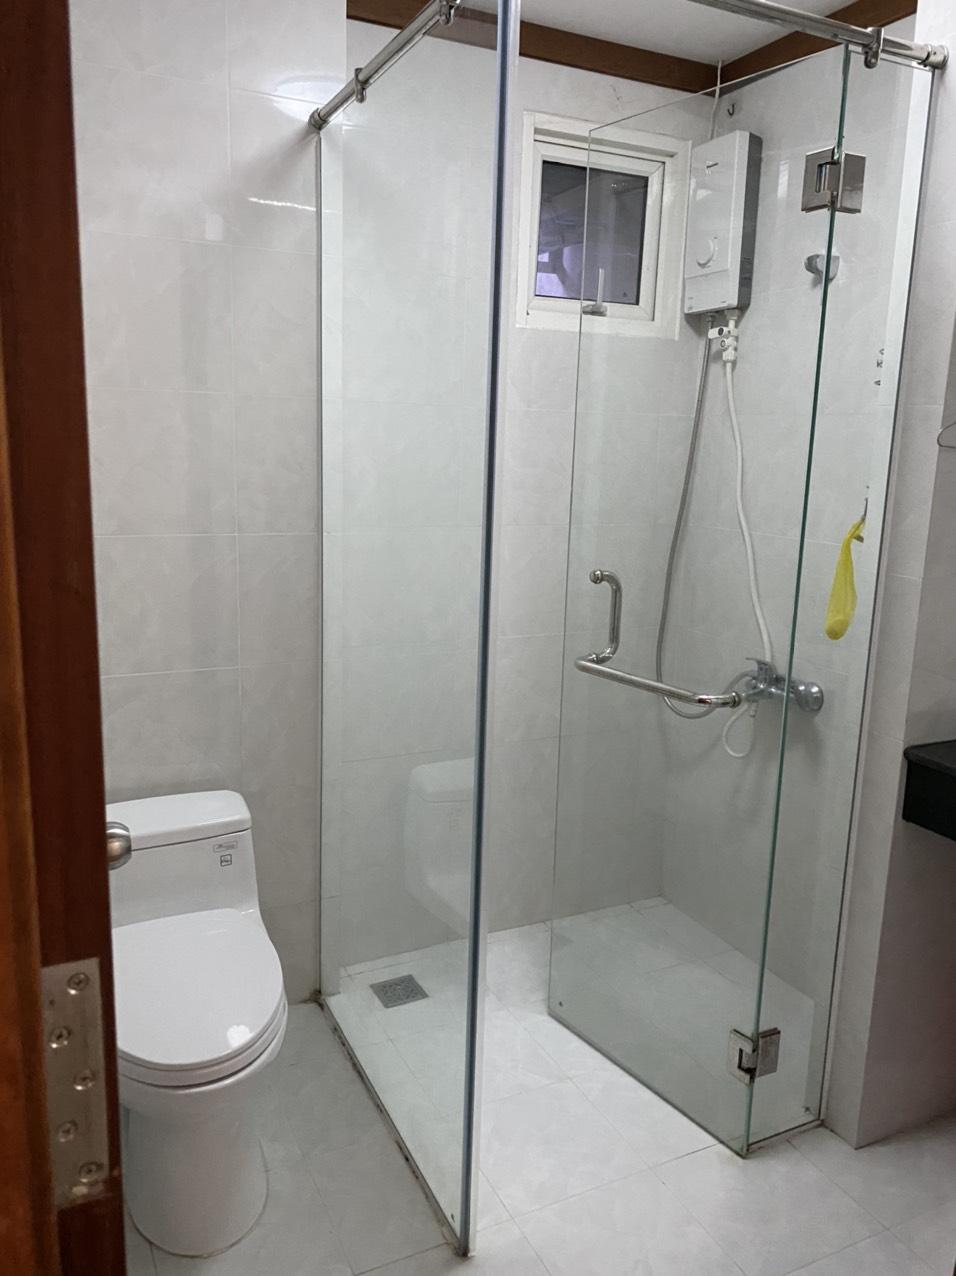 rent Hoang Anh Thanh Binh - 3 bedroom - 2 wc